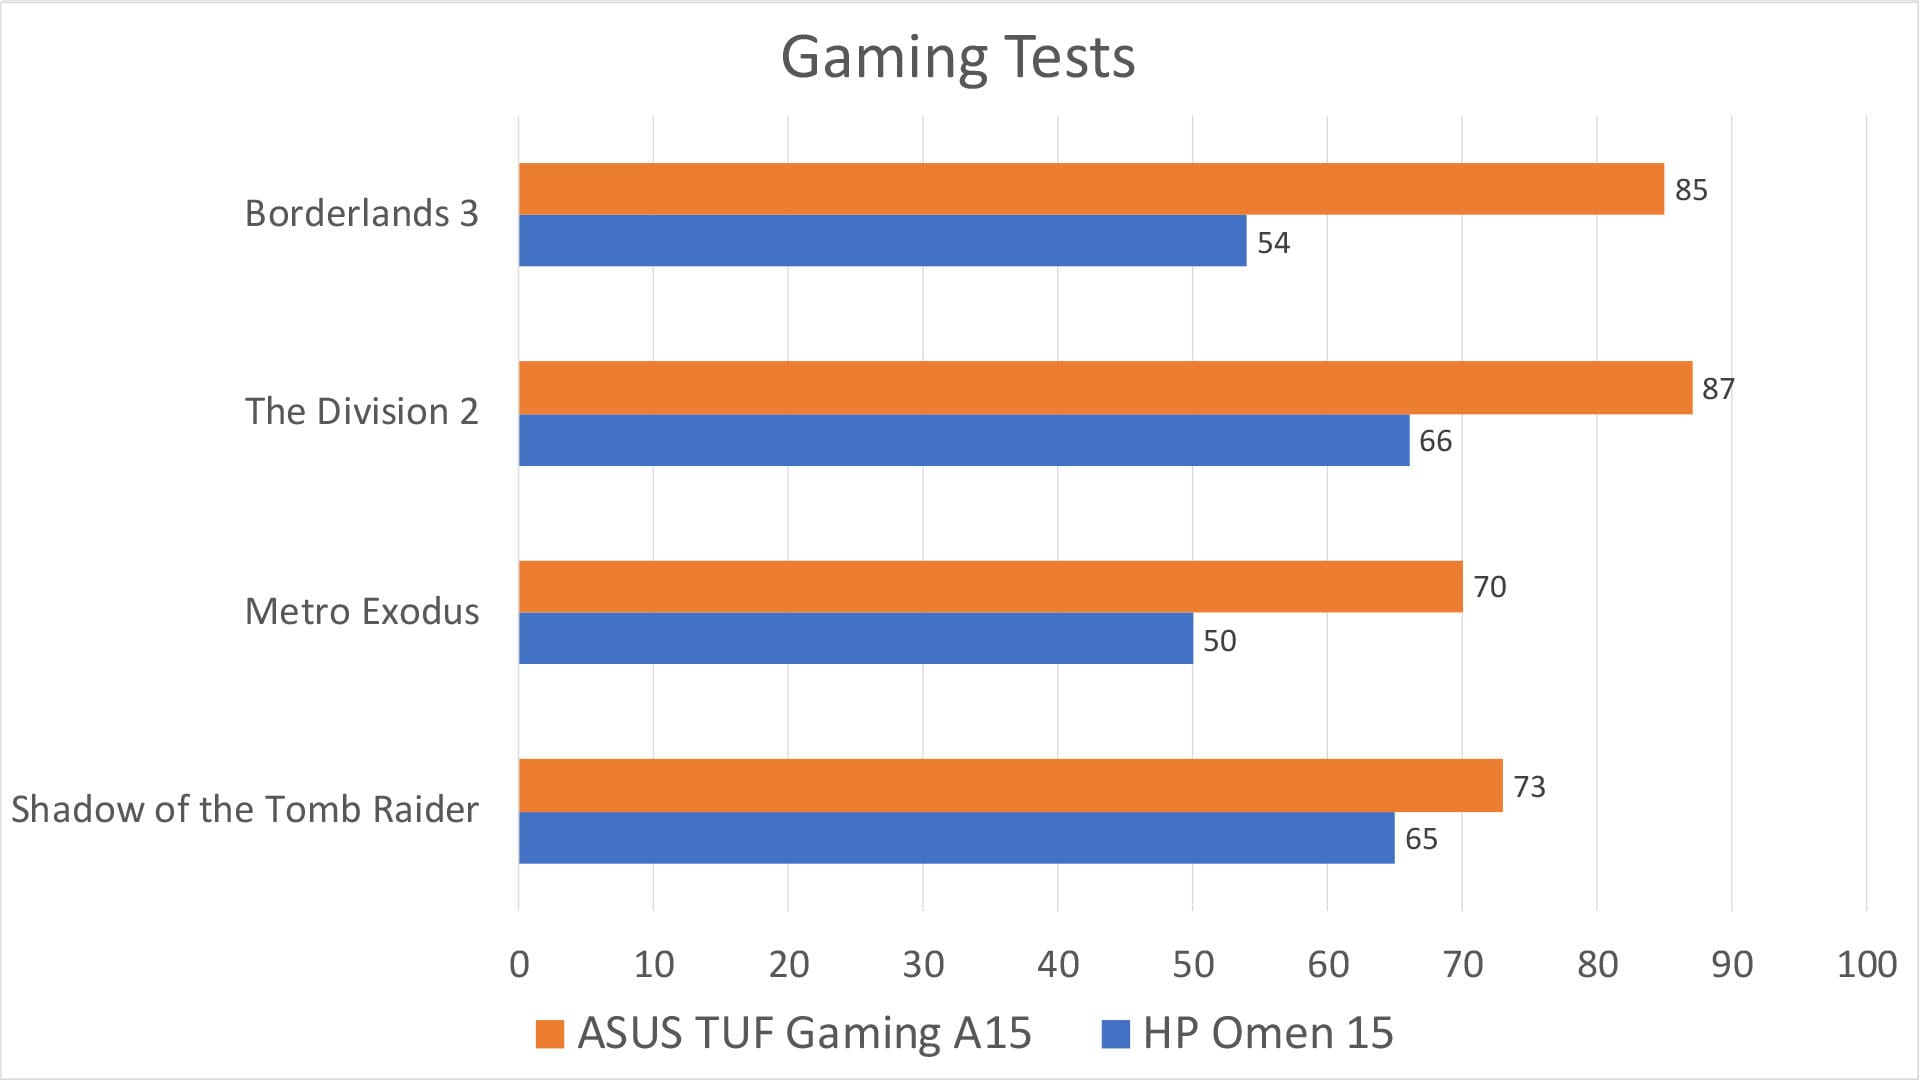 The ASUS A15 is about 25k cheaper than the Omen 15, and quite a bit more powerful, as you can see. The Omen makes up for this with a much better display and speaker set, which I think matters a great deal more, even when gaming.